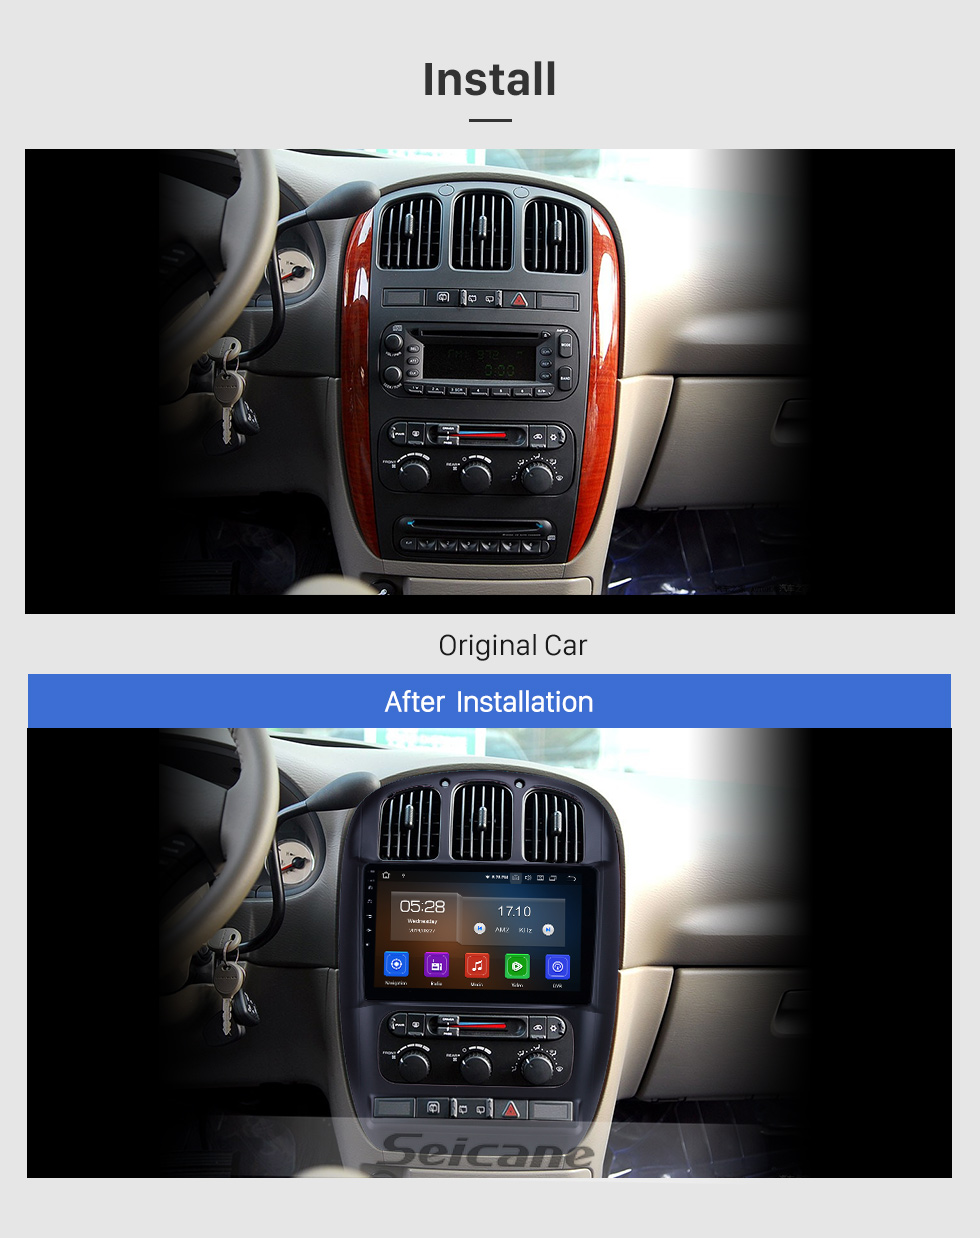 Seicane 10.1 inch For 2006-2010 2011 2012 Chrysler Pacifica Radio Android 9.0 GPS Navigation System Bluetooth HD Touchscreen Carplay support Digital TV